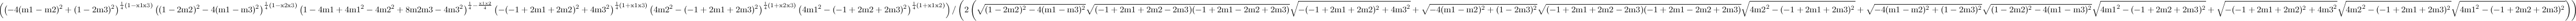 \left(\left(-4 (\text{m1}-\text{m2})^2+(1-2 \text{m3})^2\right)^{\frac{1}{4} (1-\text{x1} \text{x3})} \left((1-2 \text{m2})^2-4 (\text{m1}-\text{m3})^2\right)^{\frac{1}{4} (1-\text{x2} \text{x3})} \left(1-4 \text{m1}+4 \text{m1}^2-4 \text{m2}^2+8 \text{m2} \text{m3}-4 \text{m3}^2\right)^{\frac{1}{4}-\frac{\text{x1} \text{x2}}{4}} \left(-(-1+2 \text{m1}+2 \text{m2})^2+4 \text{m3}^2\right)^{\frac{1}{4} (1+\text{x1} \text{x3})} \left(4 \text{m2}^2-(-1+2 \text{m1}+2 \text{m3})^2\right)^{\frac{1}{4} (1+\text{x2} \text{x3})} \left(4 \text{m1}^2-(-1+2 \text{m2}+2 \text{m3})^2\right)^{\frac{1}{4} (1+\text{x1} \text{x2})}\right)/\left(2 \left(\sqrt{(1-2 \text{m2})^2-4 (\text{m1}-\text{m3})^2} \sqrt{(-1+2 \text{m1}+2 \text{m2}-2 \text{m3}) (-1+2 \text{m1}-2 \text{m2}+2 \text{m3})} \sqrt{-(-1+2 \text{m1}+2 \text{m2})^2+4 \text{m3}^2}+\sqrt{-4 (\text{m1}-\text{m2})^2+(1-2 \text{m3})^2} \sqrt{(-1+2 \text{m1}+2 \text{m2}-2 \text{m3}) (-1+2 \text{m1}-2 \text{m2}+2 \text{m3})} \sqrt{4 \text{m2}^2-(-1+2 \text{m1}+2 \text{m3})^2}+\sqrt{-4 (\text{m1}-\text{m2})^2+(1-2 \text{m3})^2} \sqrt{(1-2 \text{m2})^2-4 (\text{m1}-\text{m3})^2} \sqrt{4 \text{m1}^2-(-1+2 \text{m2}+2 \text{m3})^2}+\sqrt{-(-1+2 \text{m1}+2 \text{m2})^2+4 \text{m3}^2} \sqrt{4 \text{m2}^2-(-1+2 \text{m1}+2 \text{m3})^2} \sqrt{4 \text{m1}^2-(-1+2 \text{m2}+2 \text{m3})^2}\right)\right)